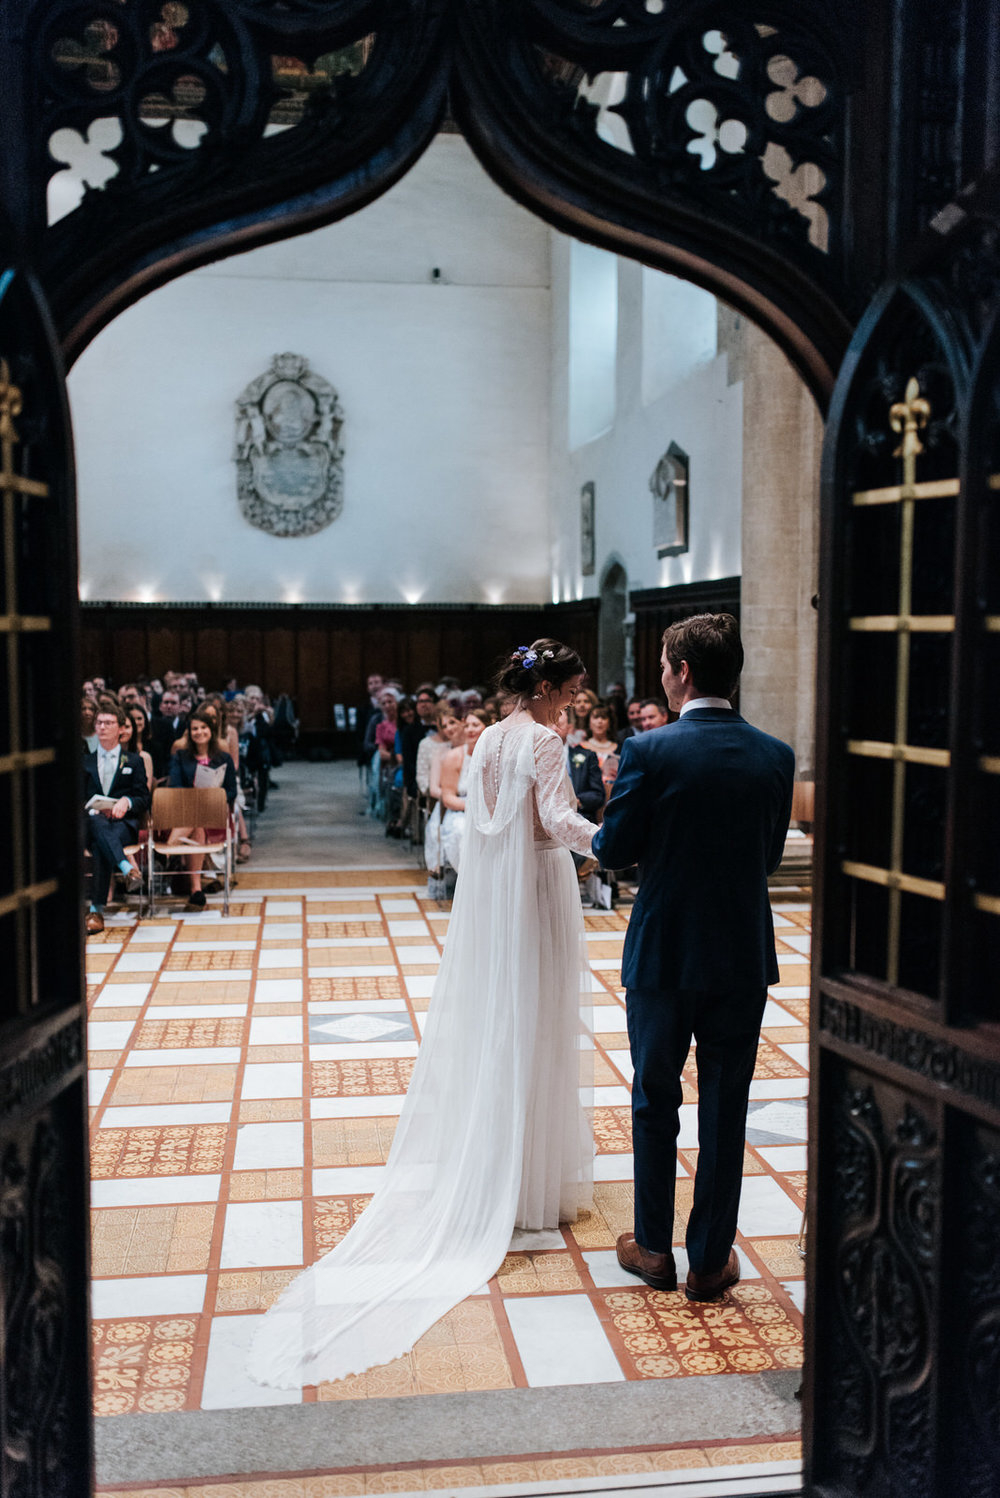 Bride and groom walk out towards guests during wedding ceremony